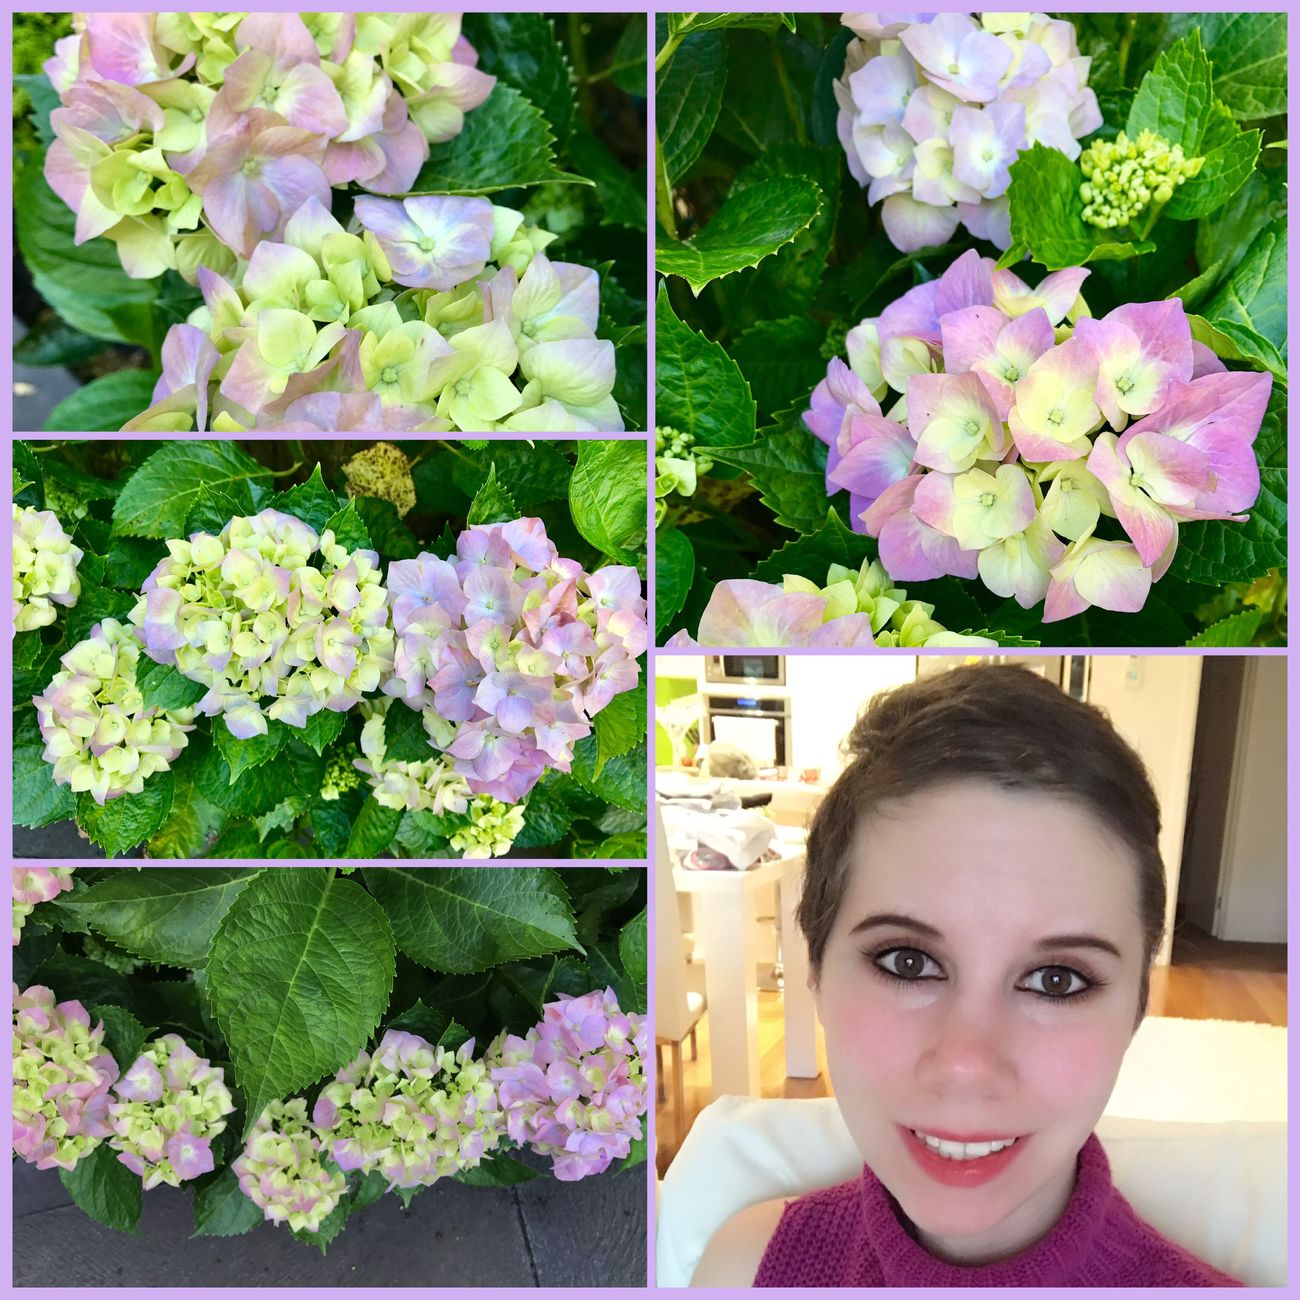 The hydrangeas are starting to bloom real pretty now. They've had a slow start this year, but I'm glad to see them all popping out 🌸😊🌸 there's still alot of little green buds on top of the bush, but all the bottom flower's are blooming now. When the rest of them bloom, I will take a photo of the whole bush 🌸✌🏼️😊🌸 #hydrangeas #Flowers #hydrangeabush #Blooming #Beautiful #Nature #Home #Garden🌸